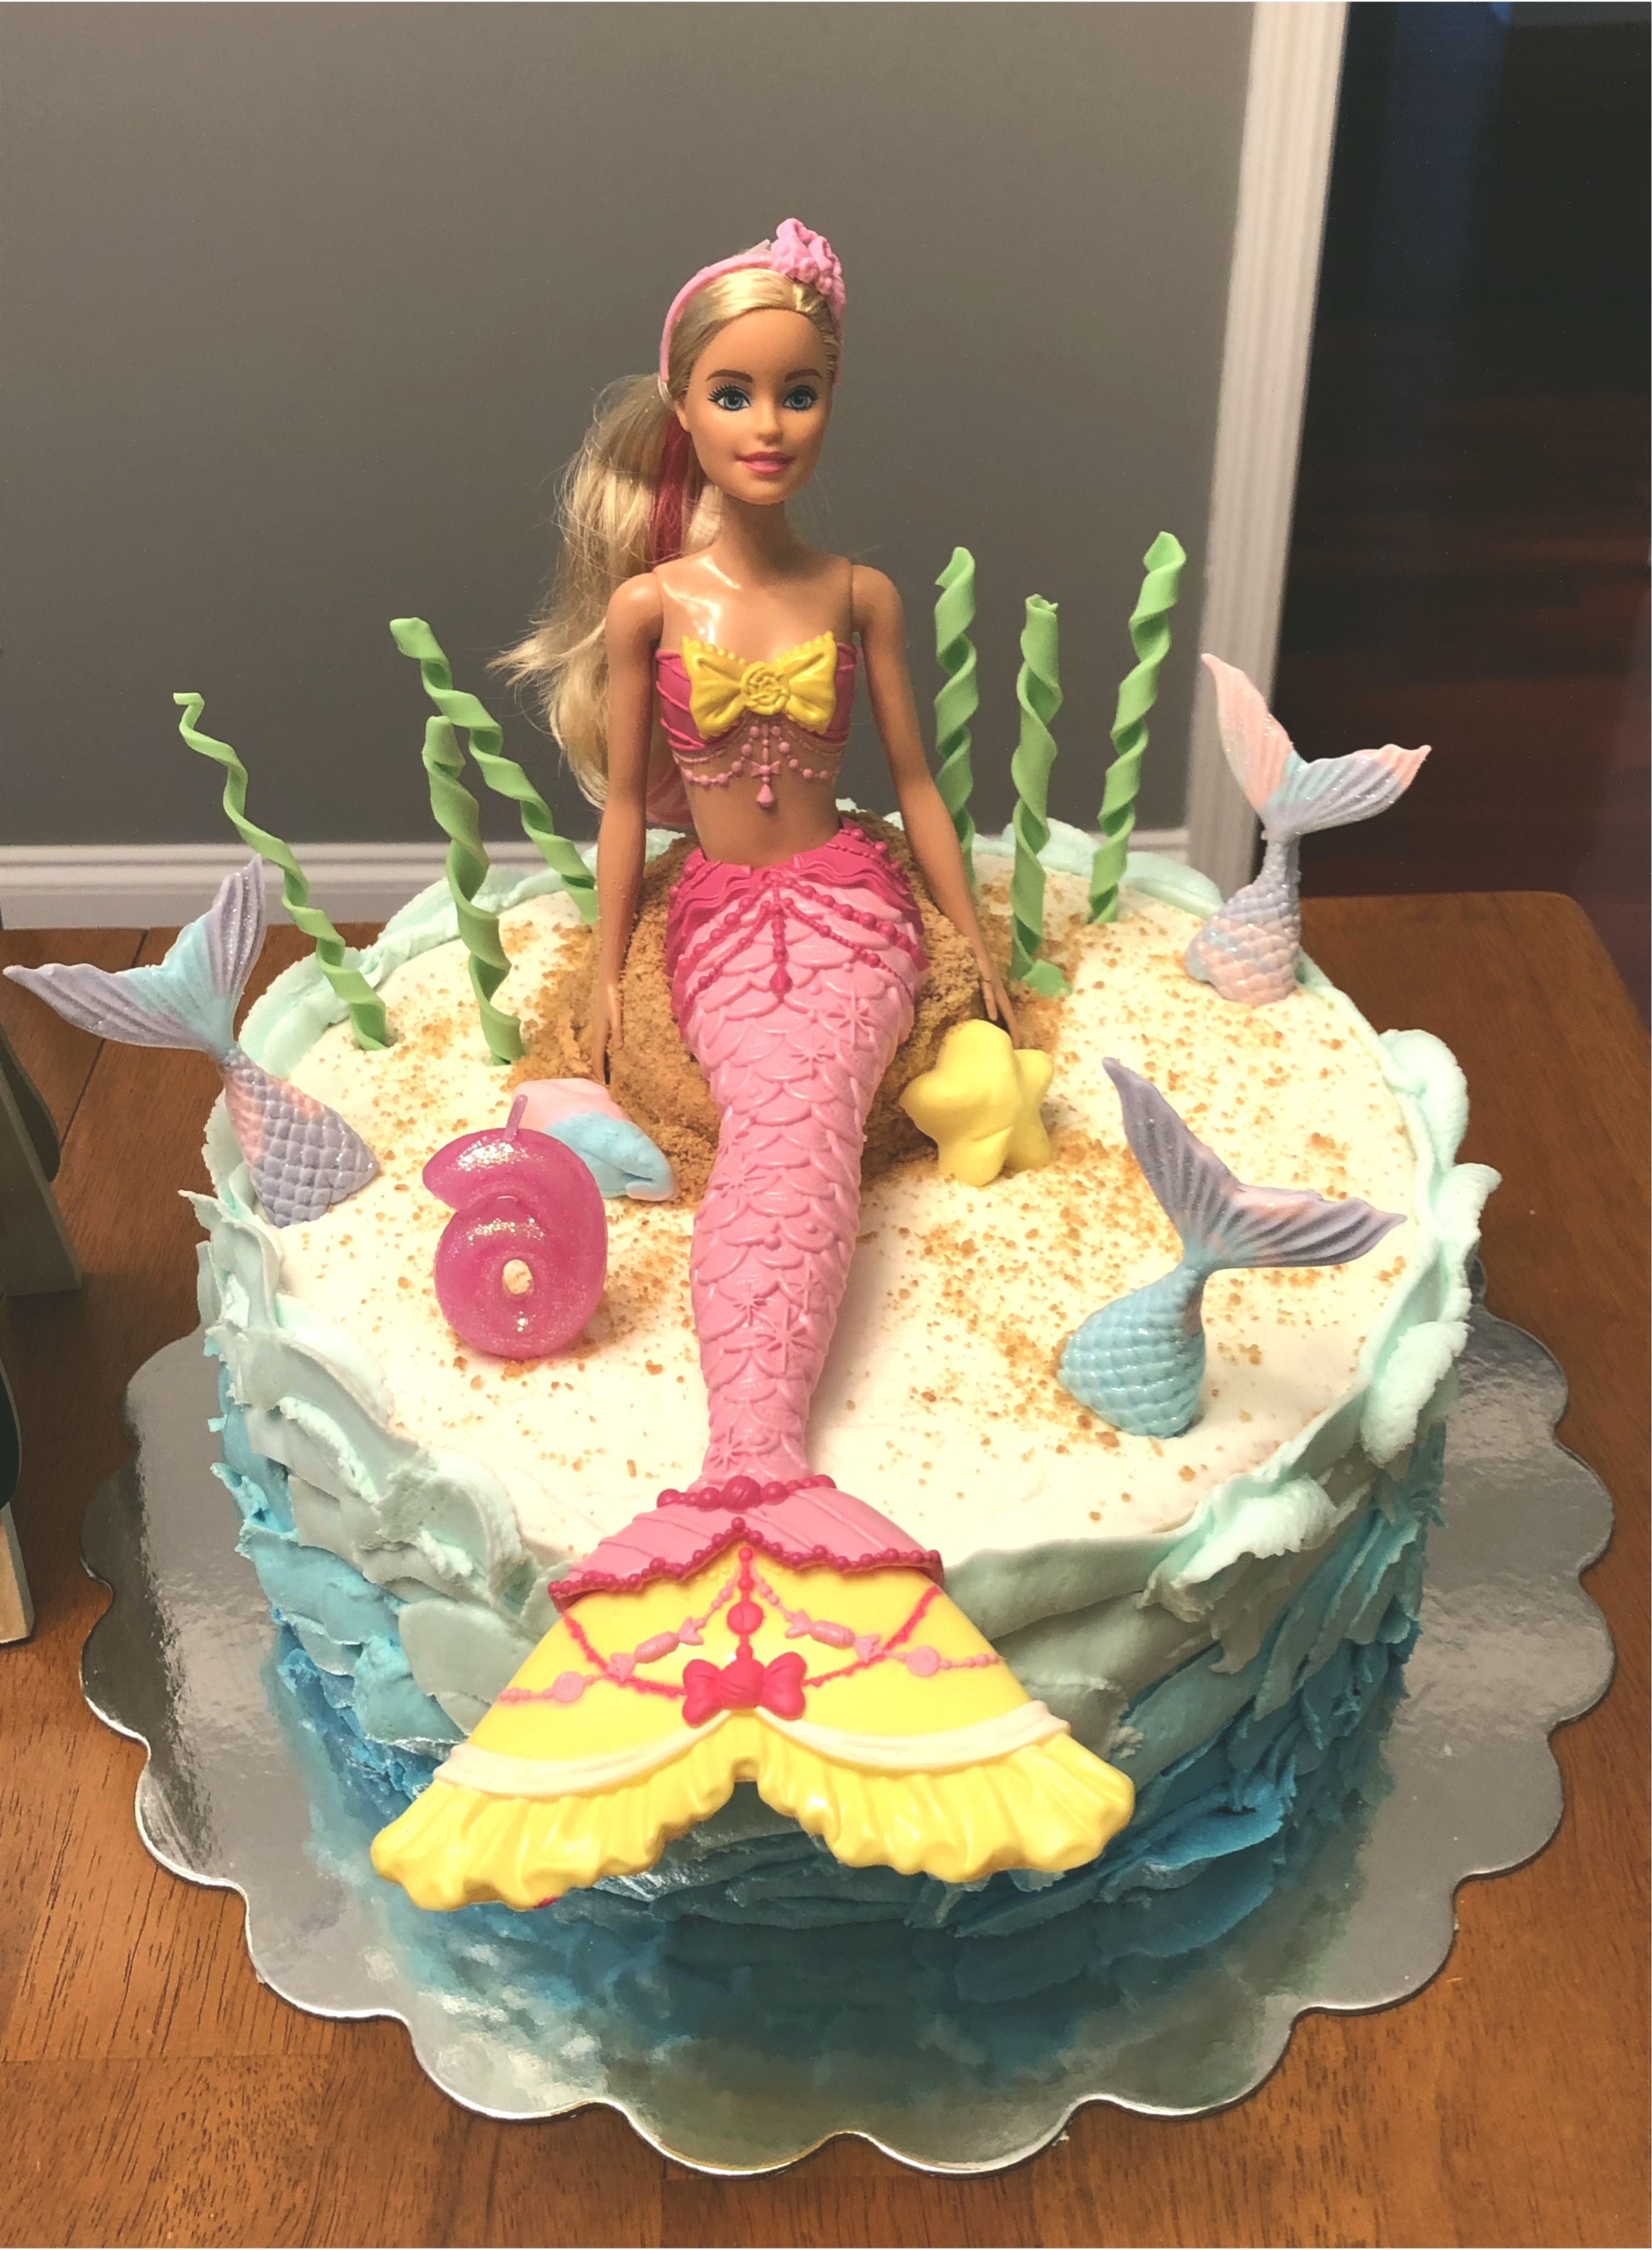 Photo of Barbie-Puppe-Meerjungfrau-Kuchen #BarbiePuppe #barbiedollcake #doll